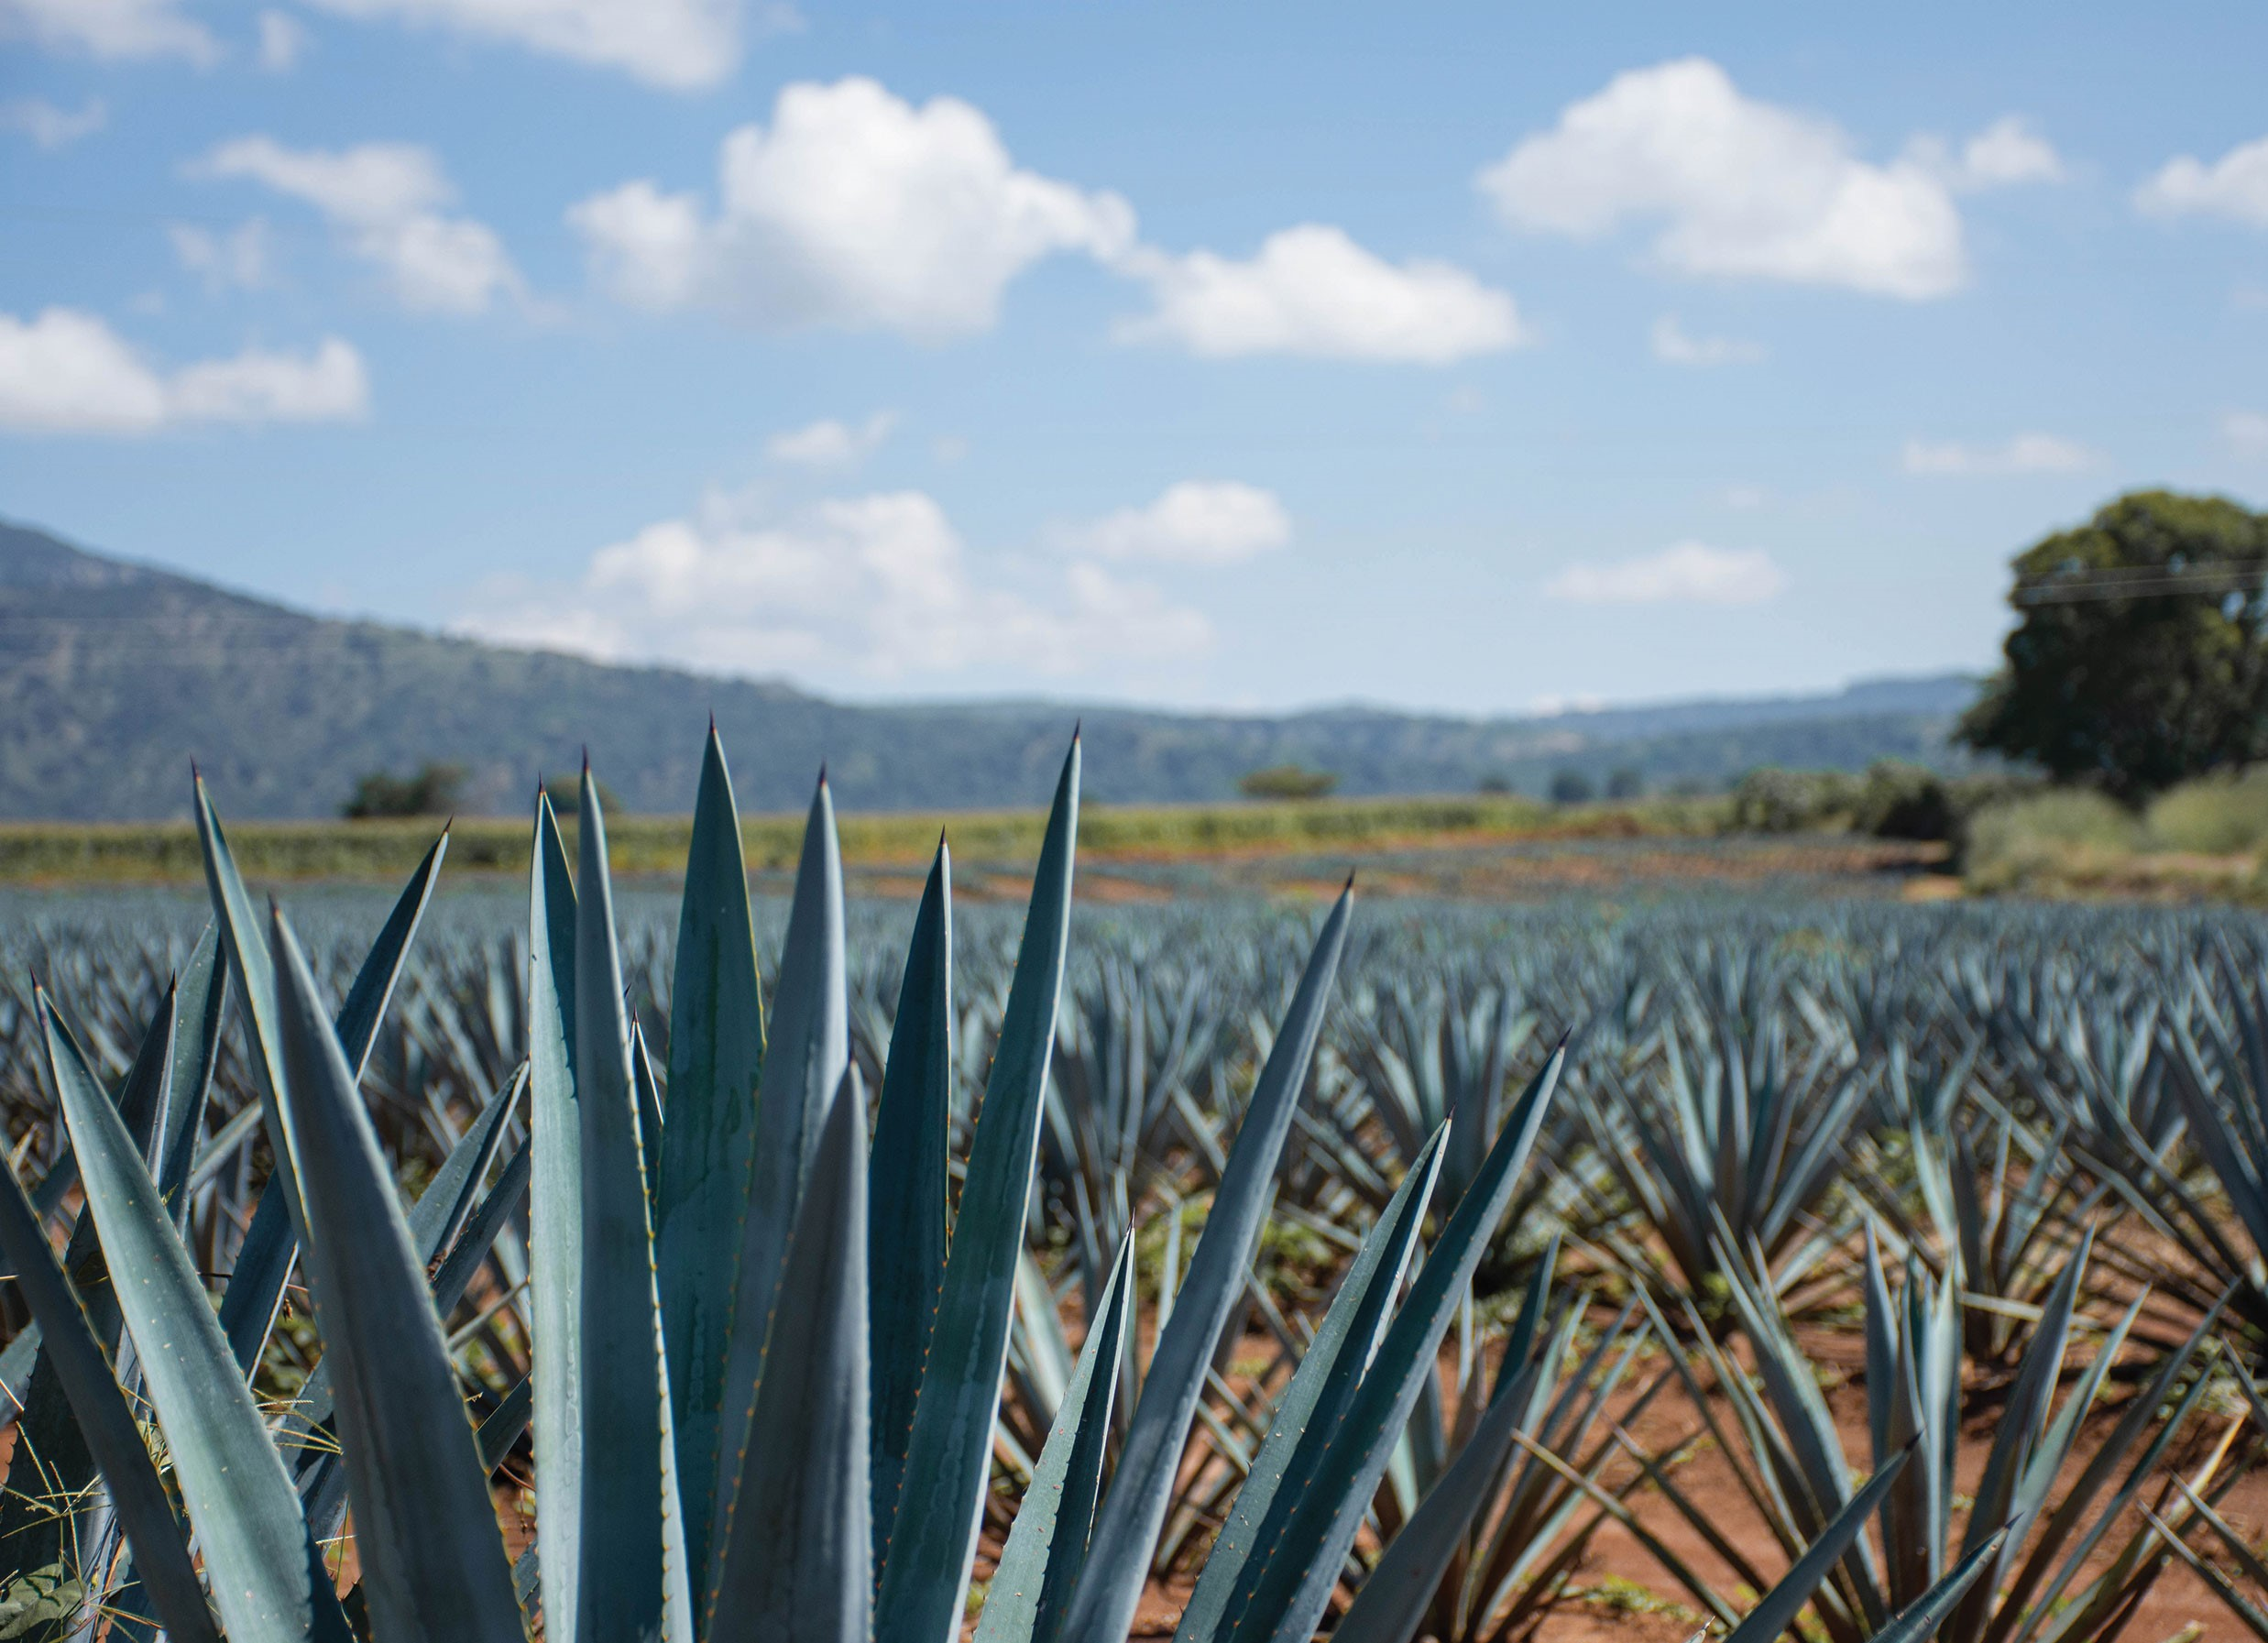 Agave Upheaval: A Struggle for Small Producers